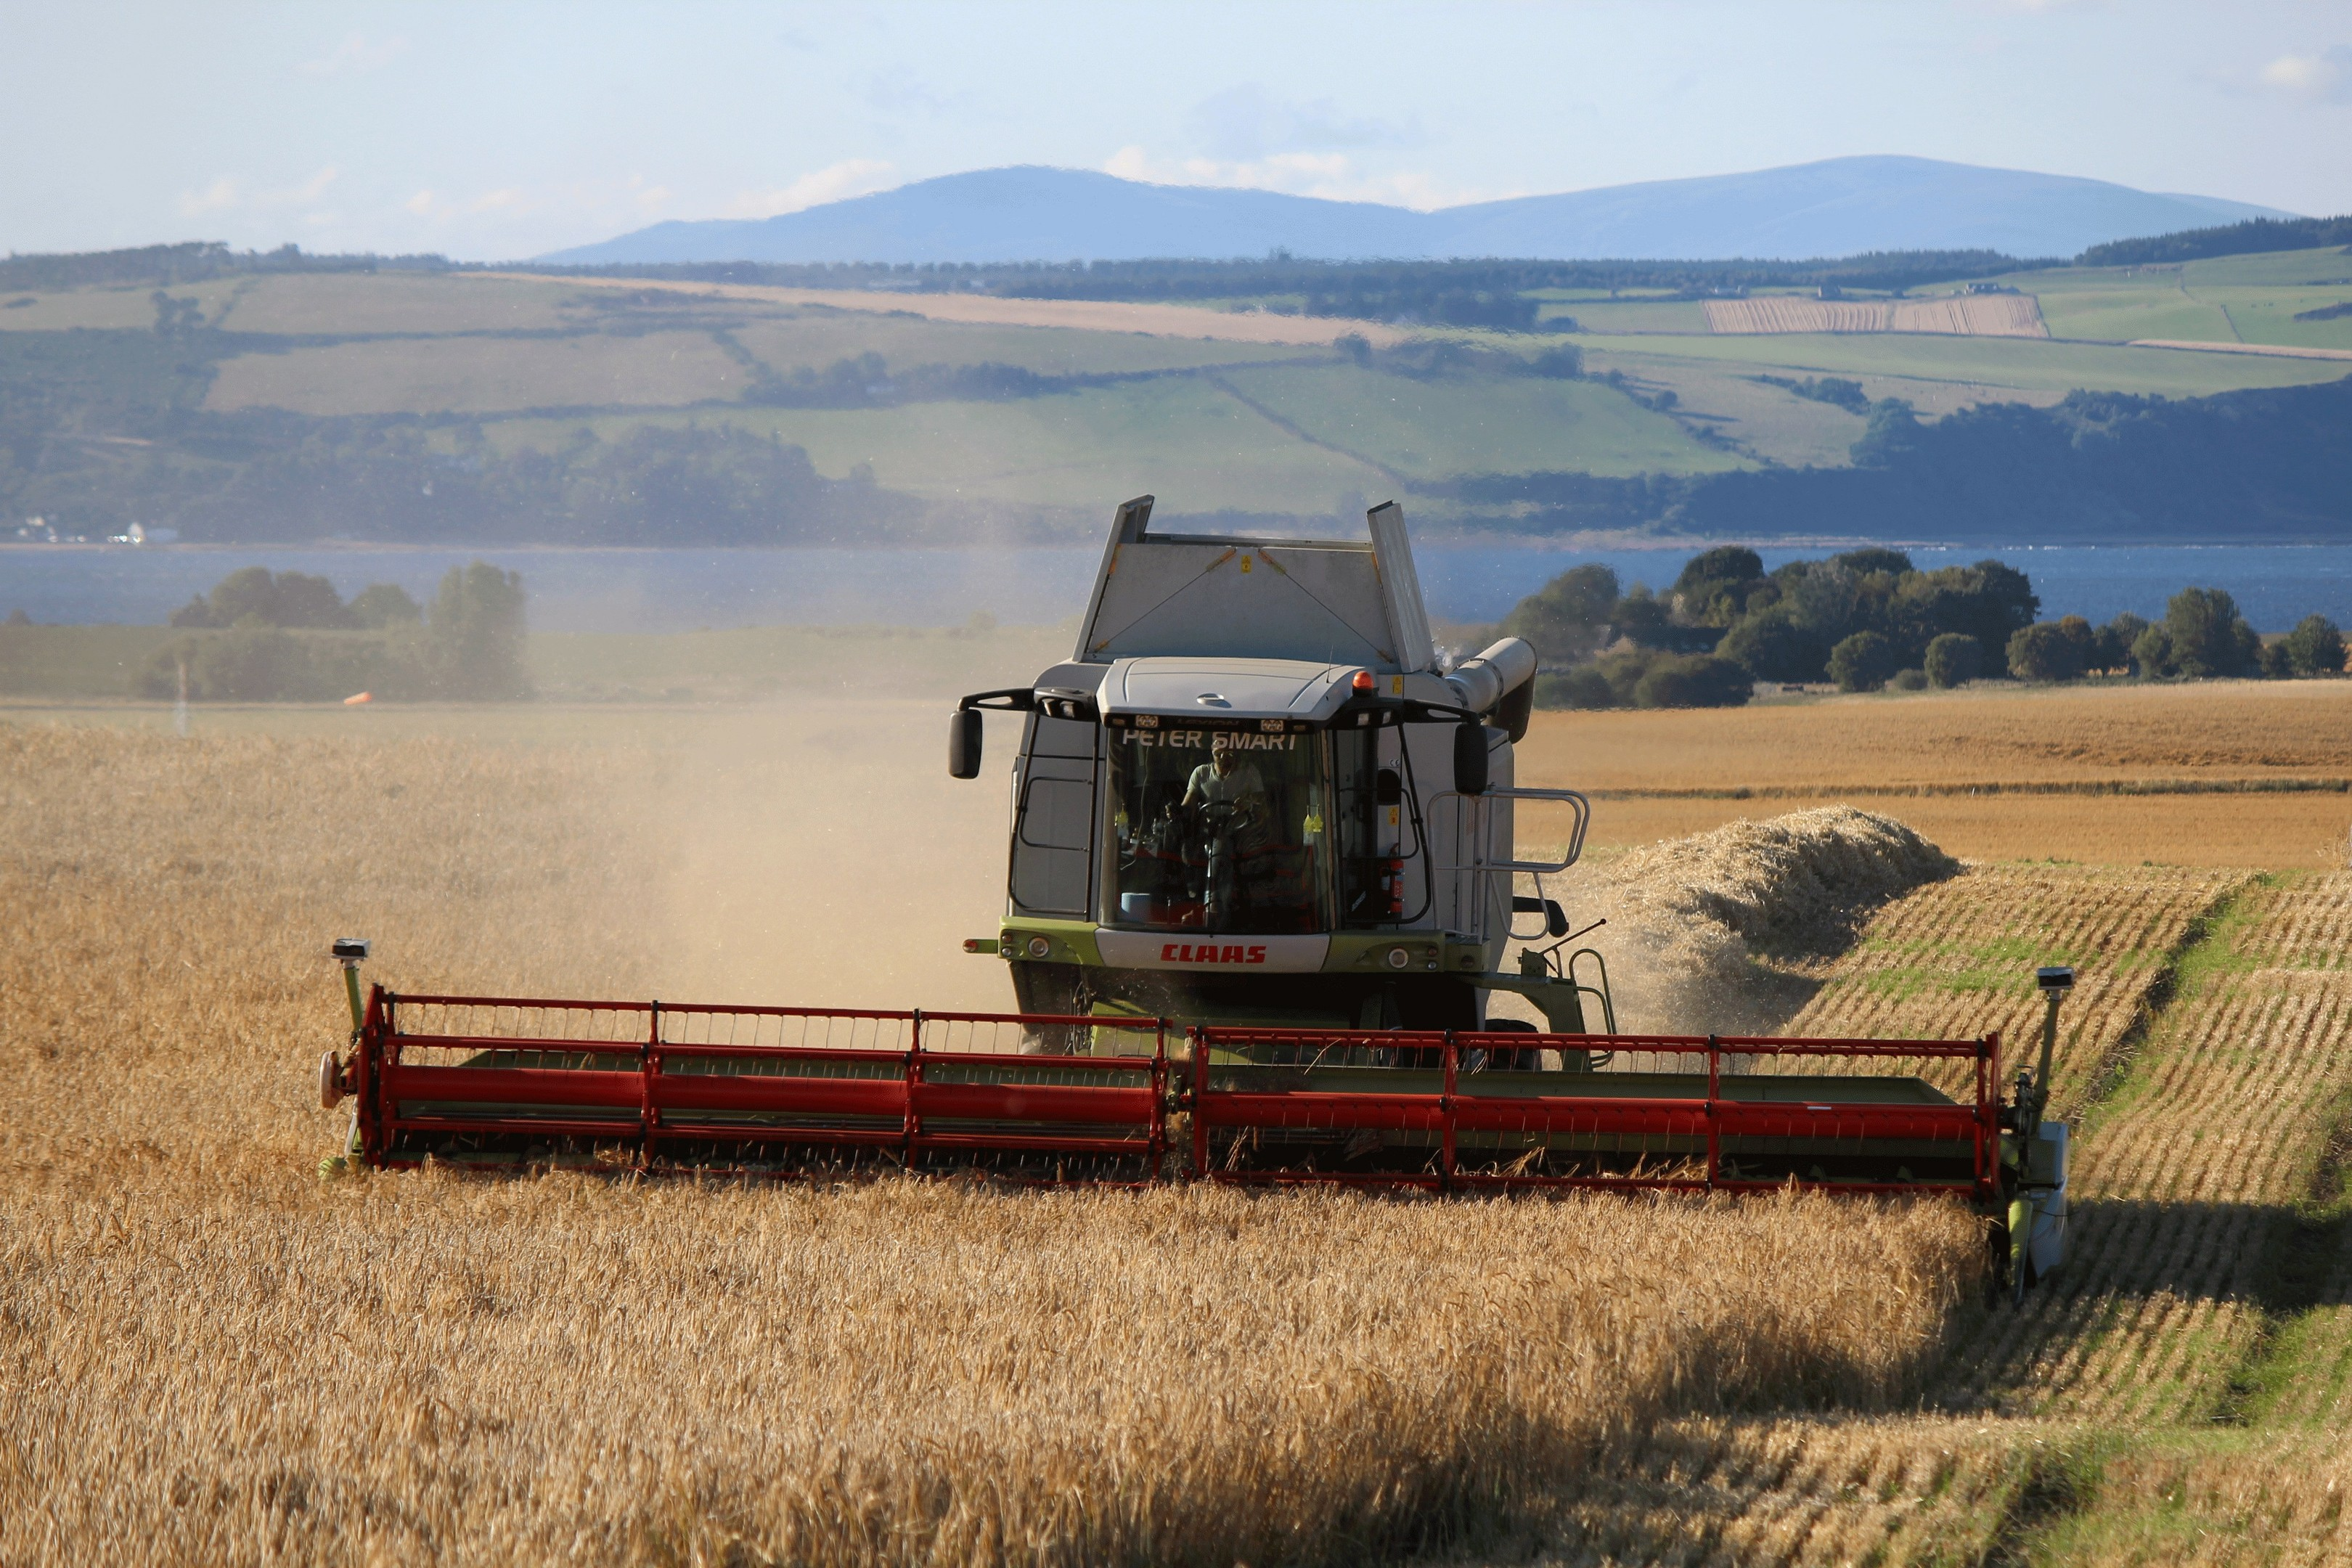 Barley is the second most important crop in UK agriculture